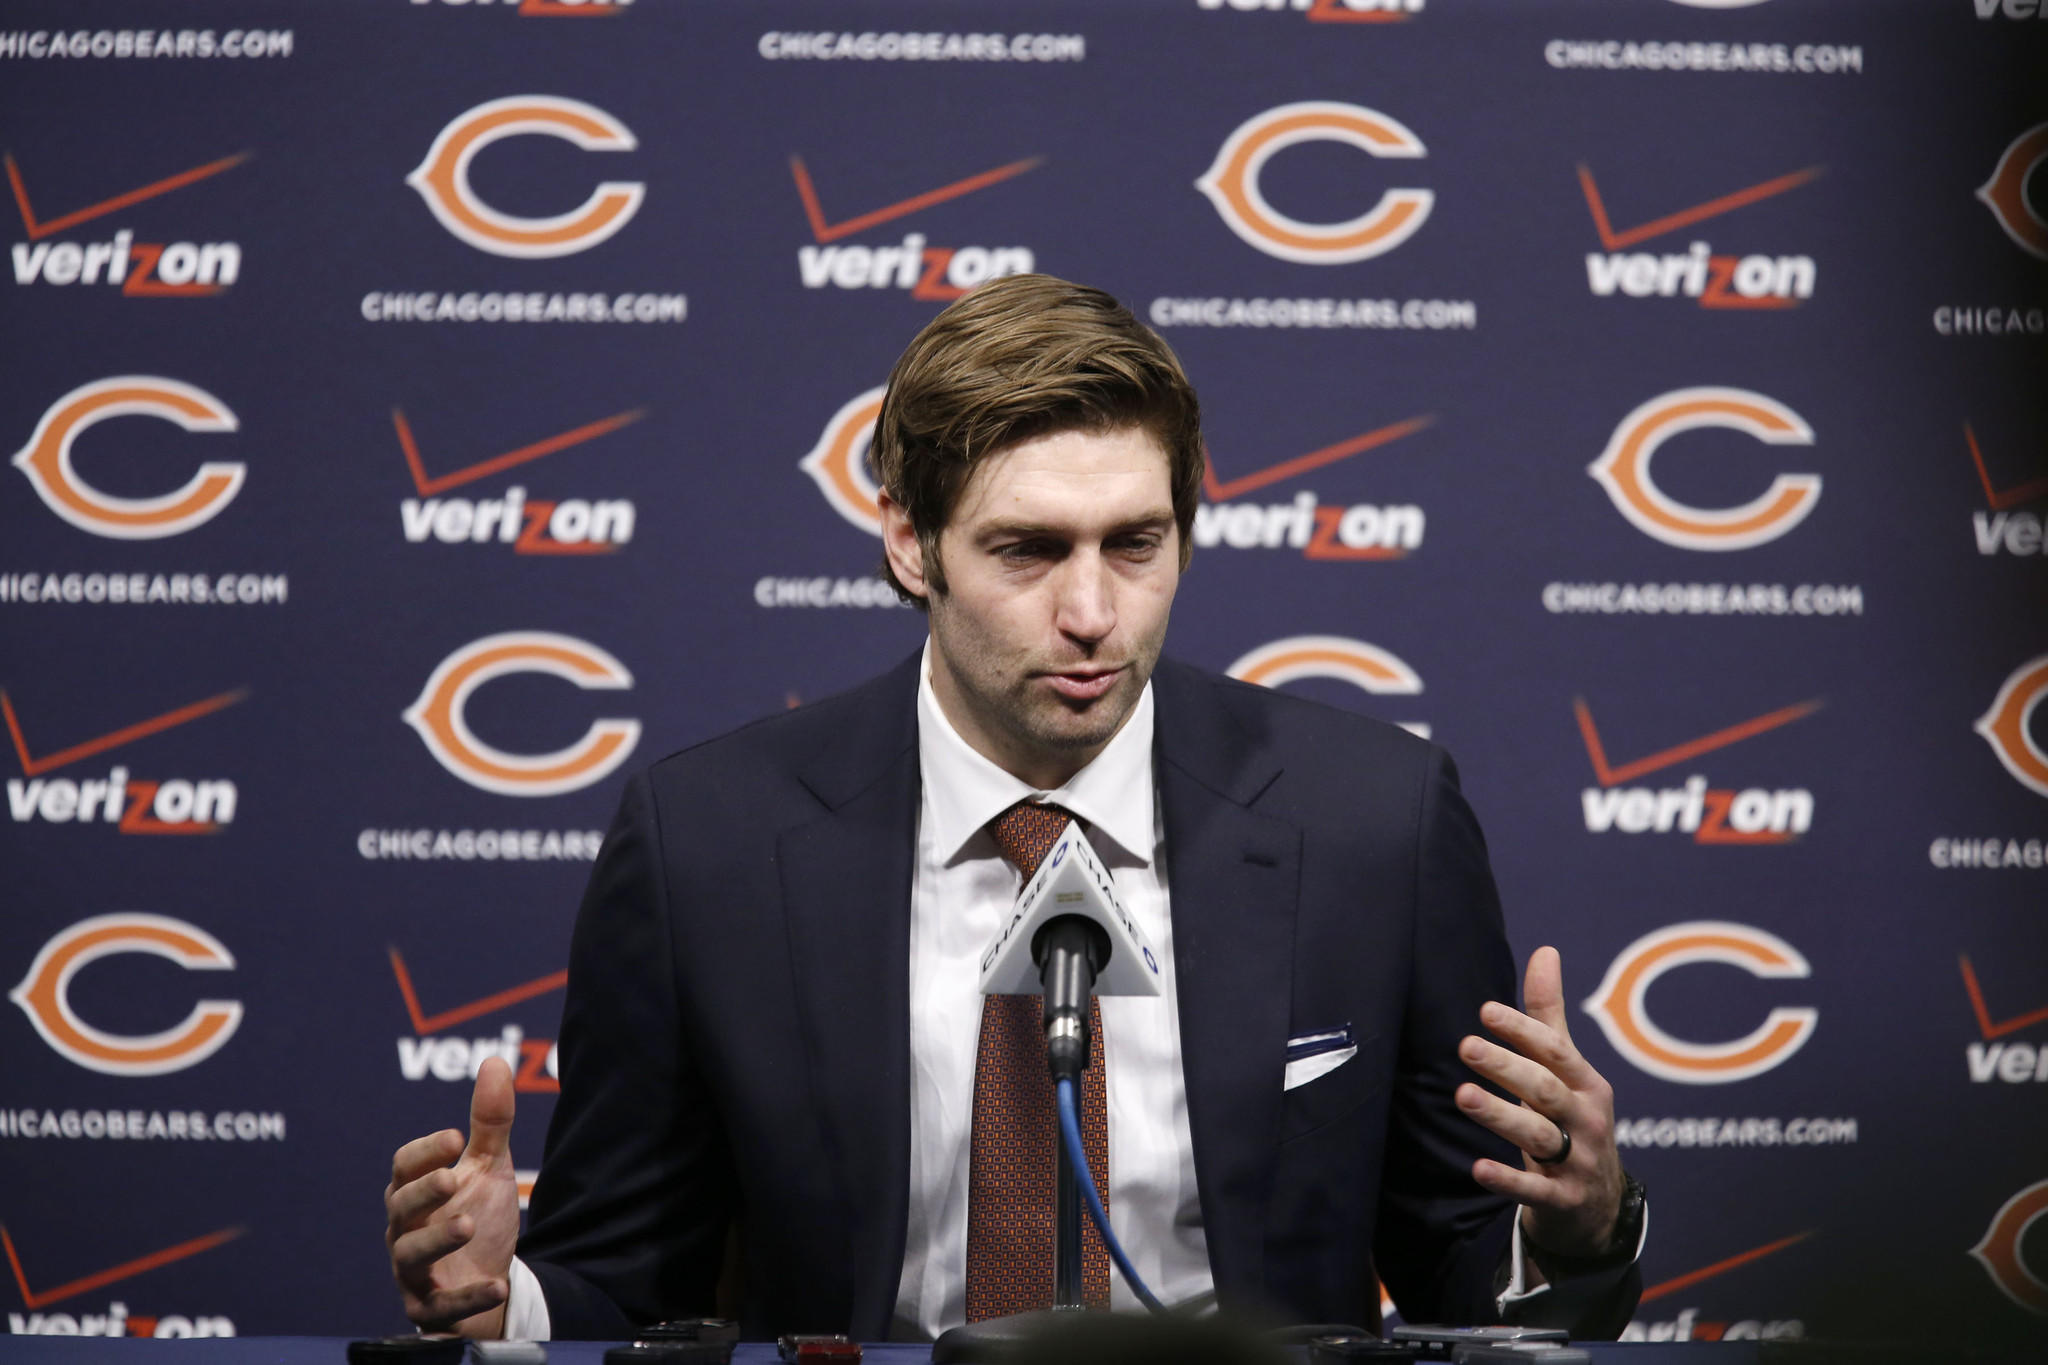 Chicago Bears quarterback Jay Cutler speaks to the media at a press conference regarding his contract extension seen here at Halas Hall in Lake Forest on Thursday, Jan. 2, 2014.. (Jose M. Osorio/ Chicago Tribune) B583434860Z.1 ....OUTSIDE TRIBUNE CO.- NO MAGS, NO SALES, NO INTERNET, NO TV, NEW YORK TIMES OUT, CHICAGO OUT, NO DIGITAL MANIPULATION...